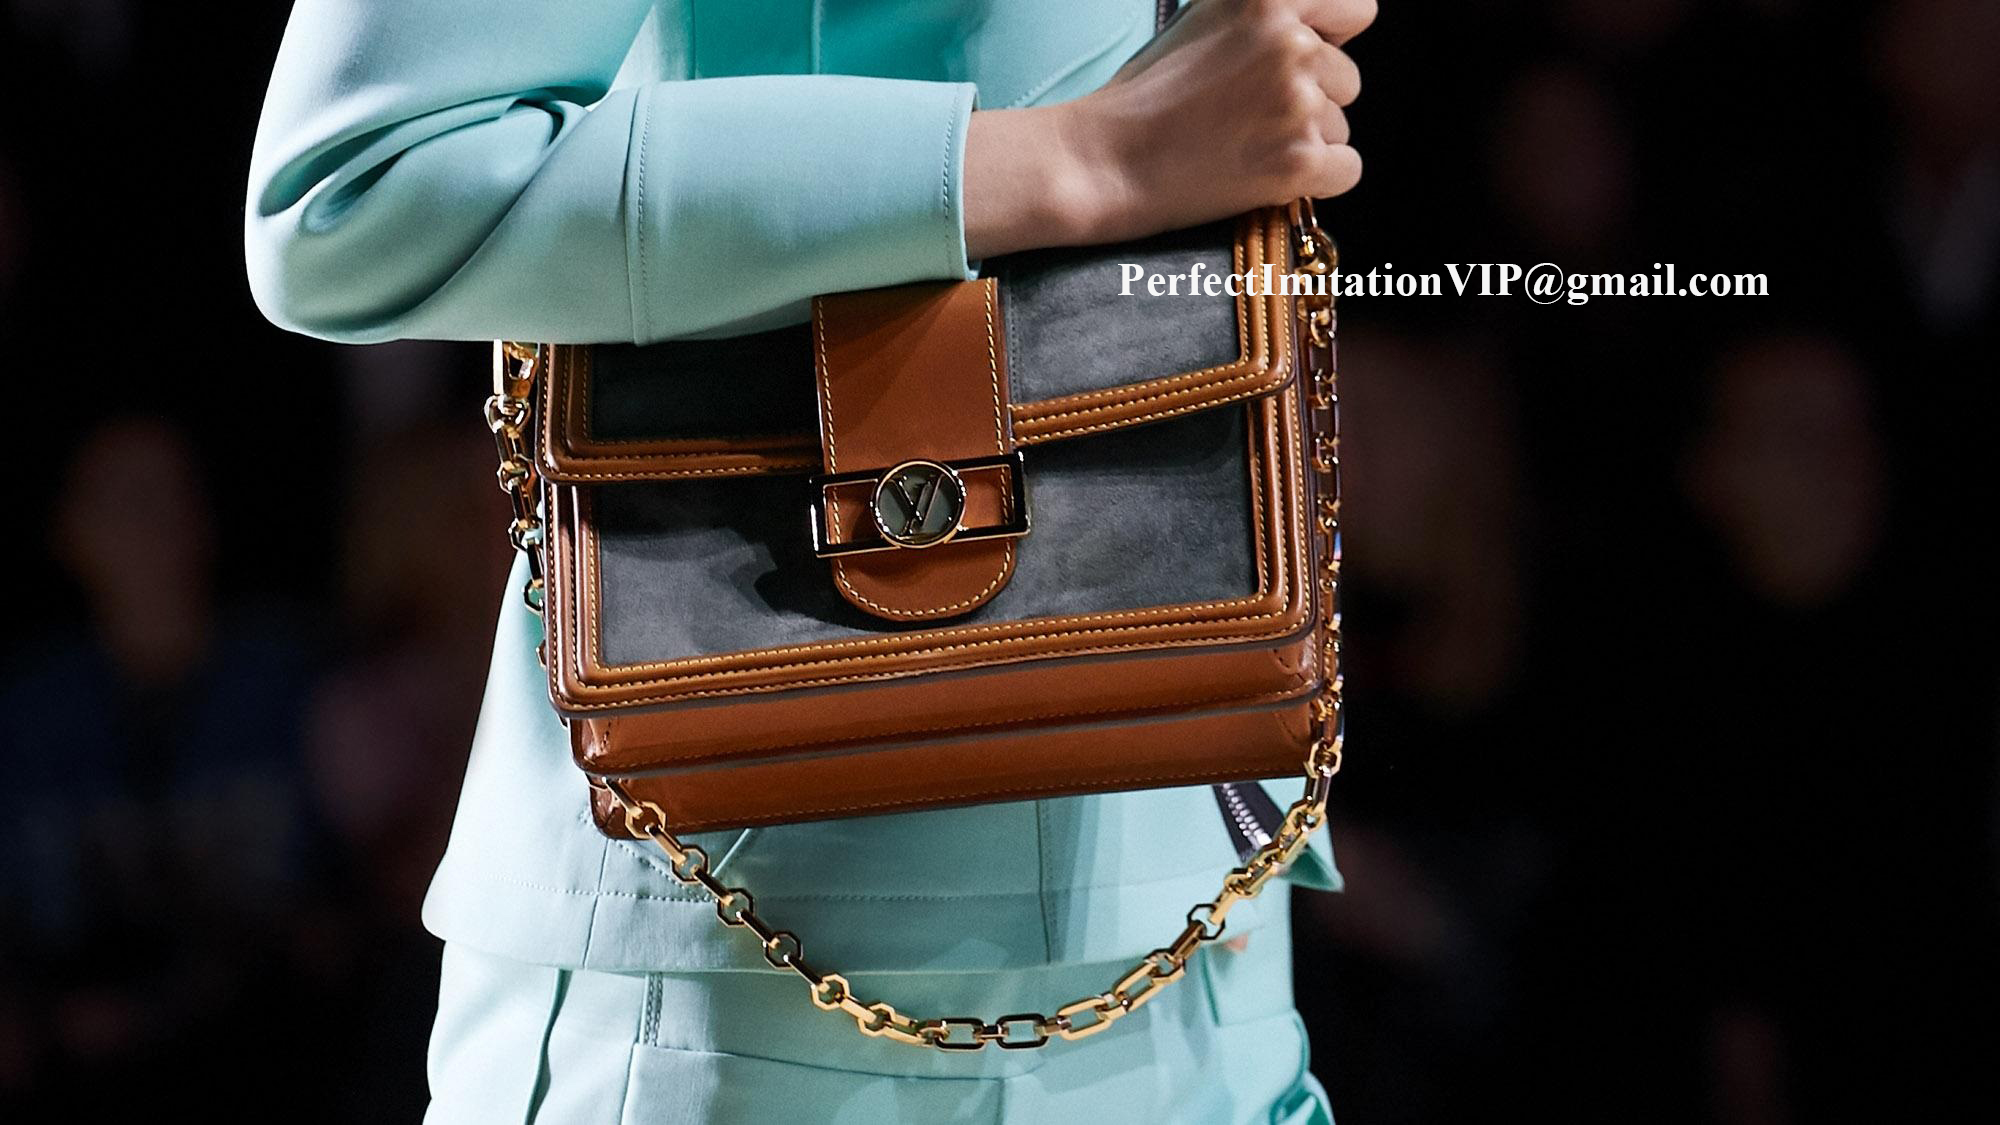 How Legal is it to own an Louis Vuitton replica